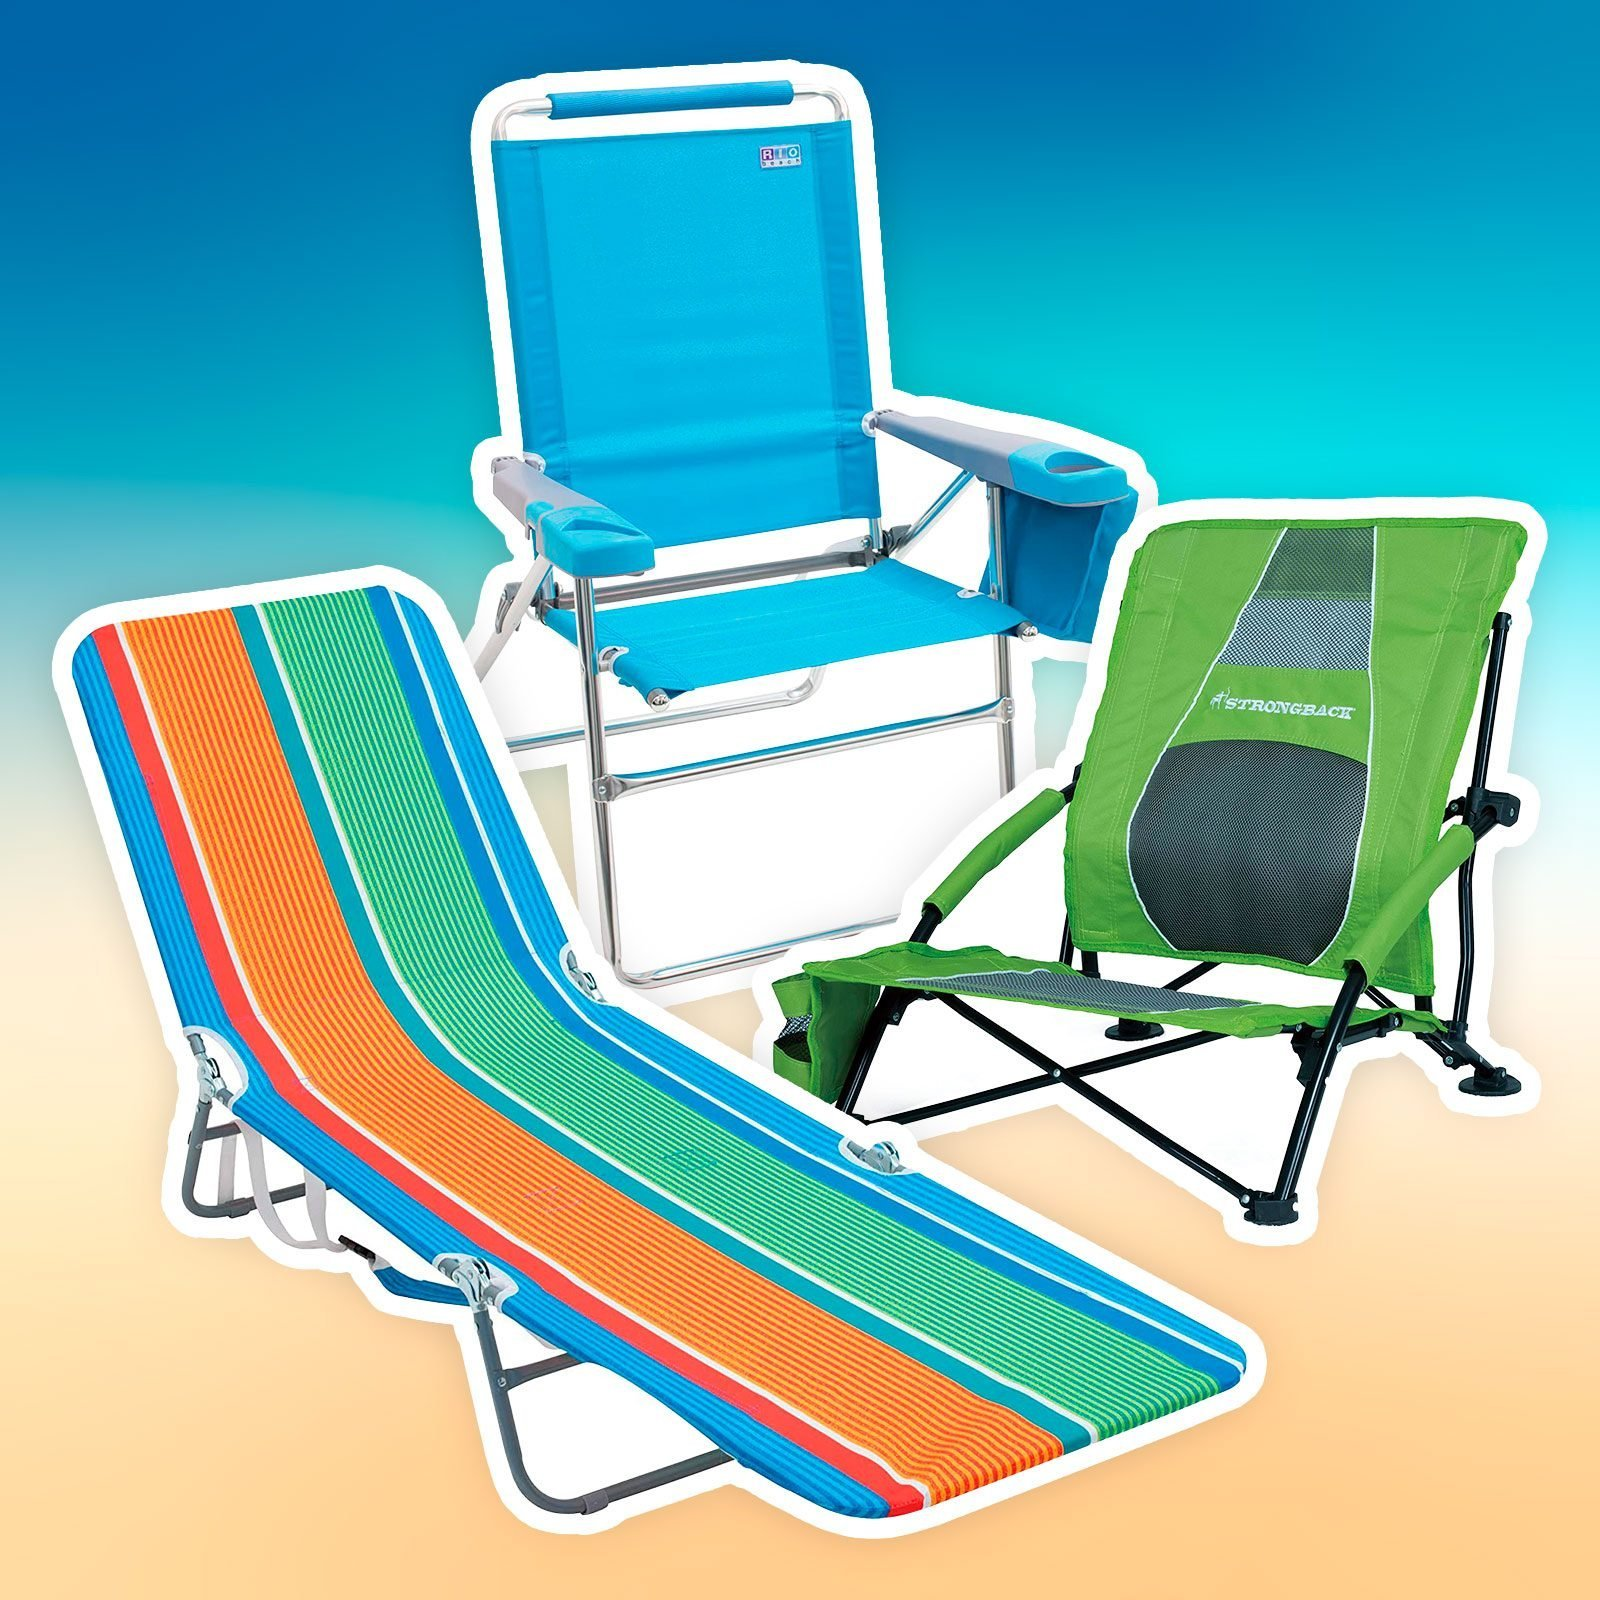 12 Best Beach Chairs for Summer Lounging